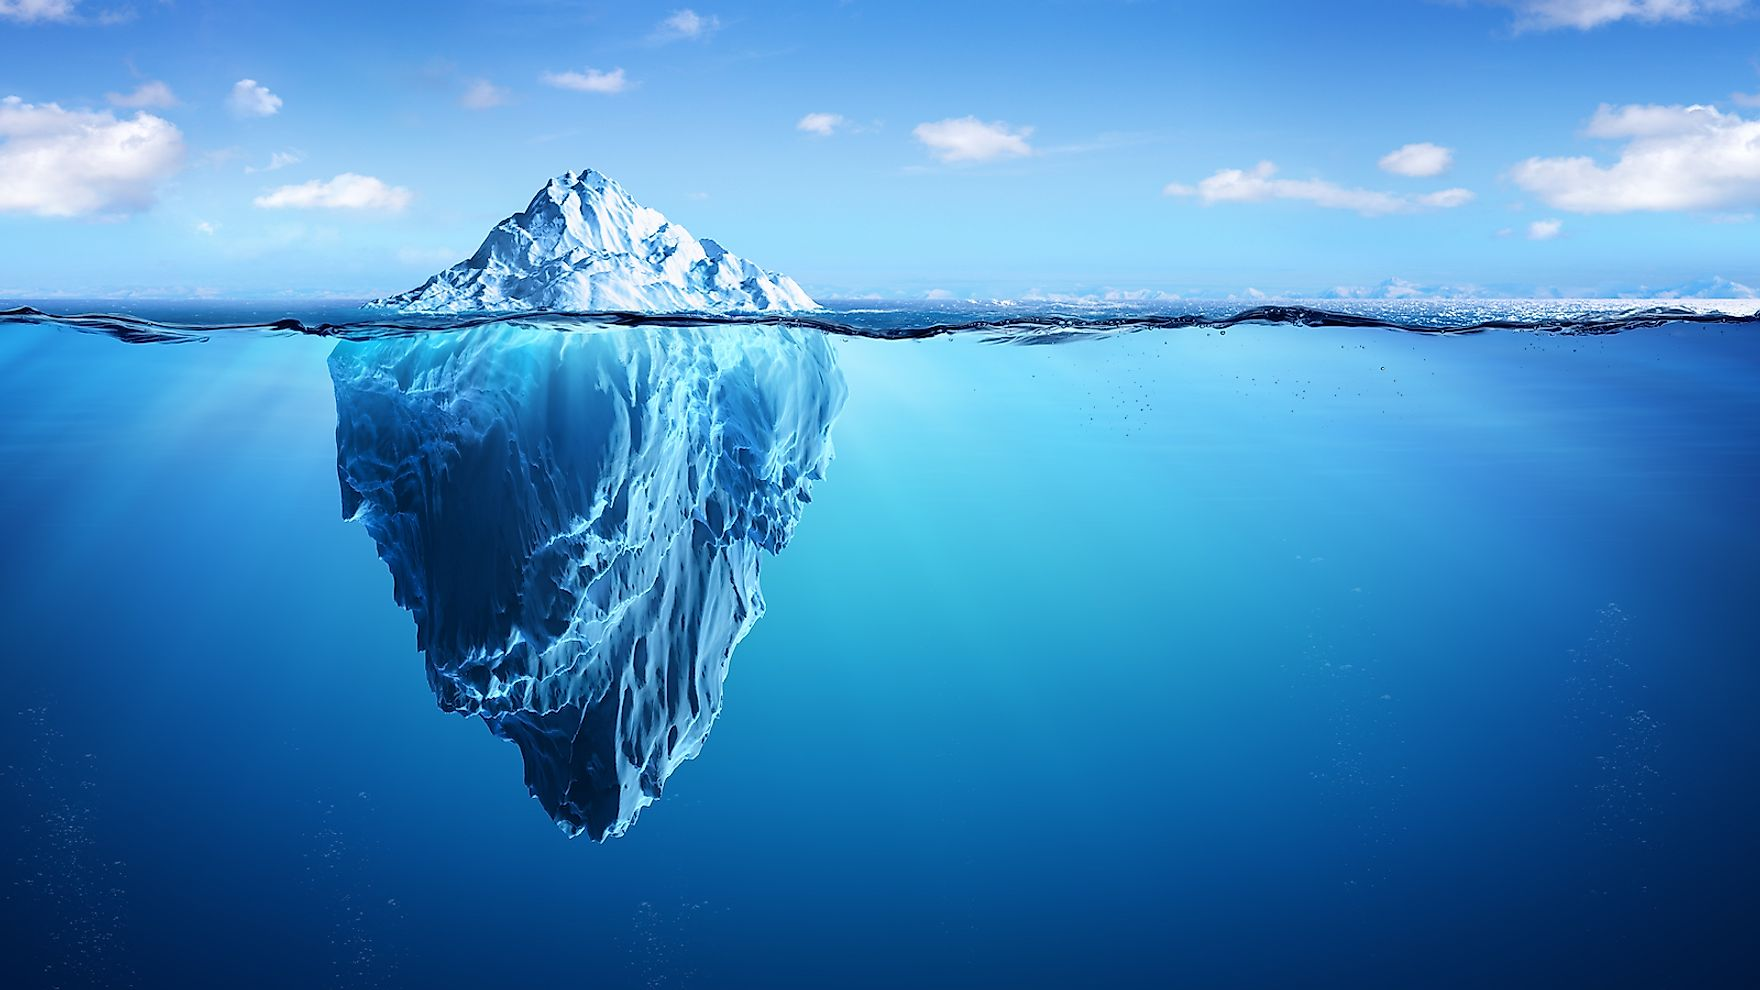 Only about 10% of the iceberg is visible above water.